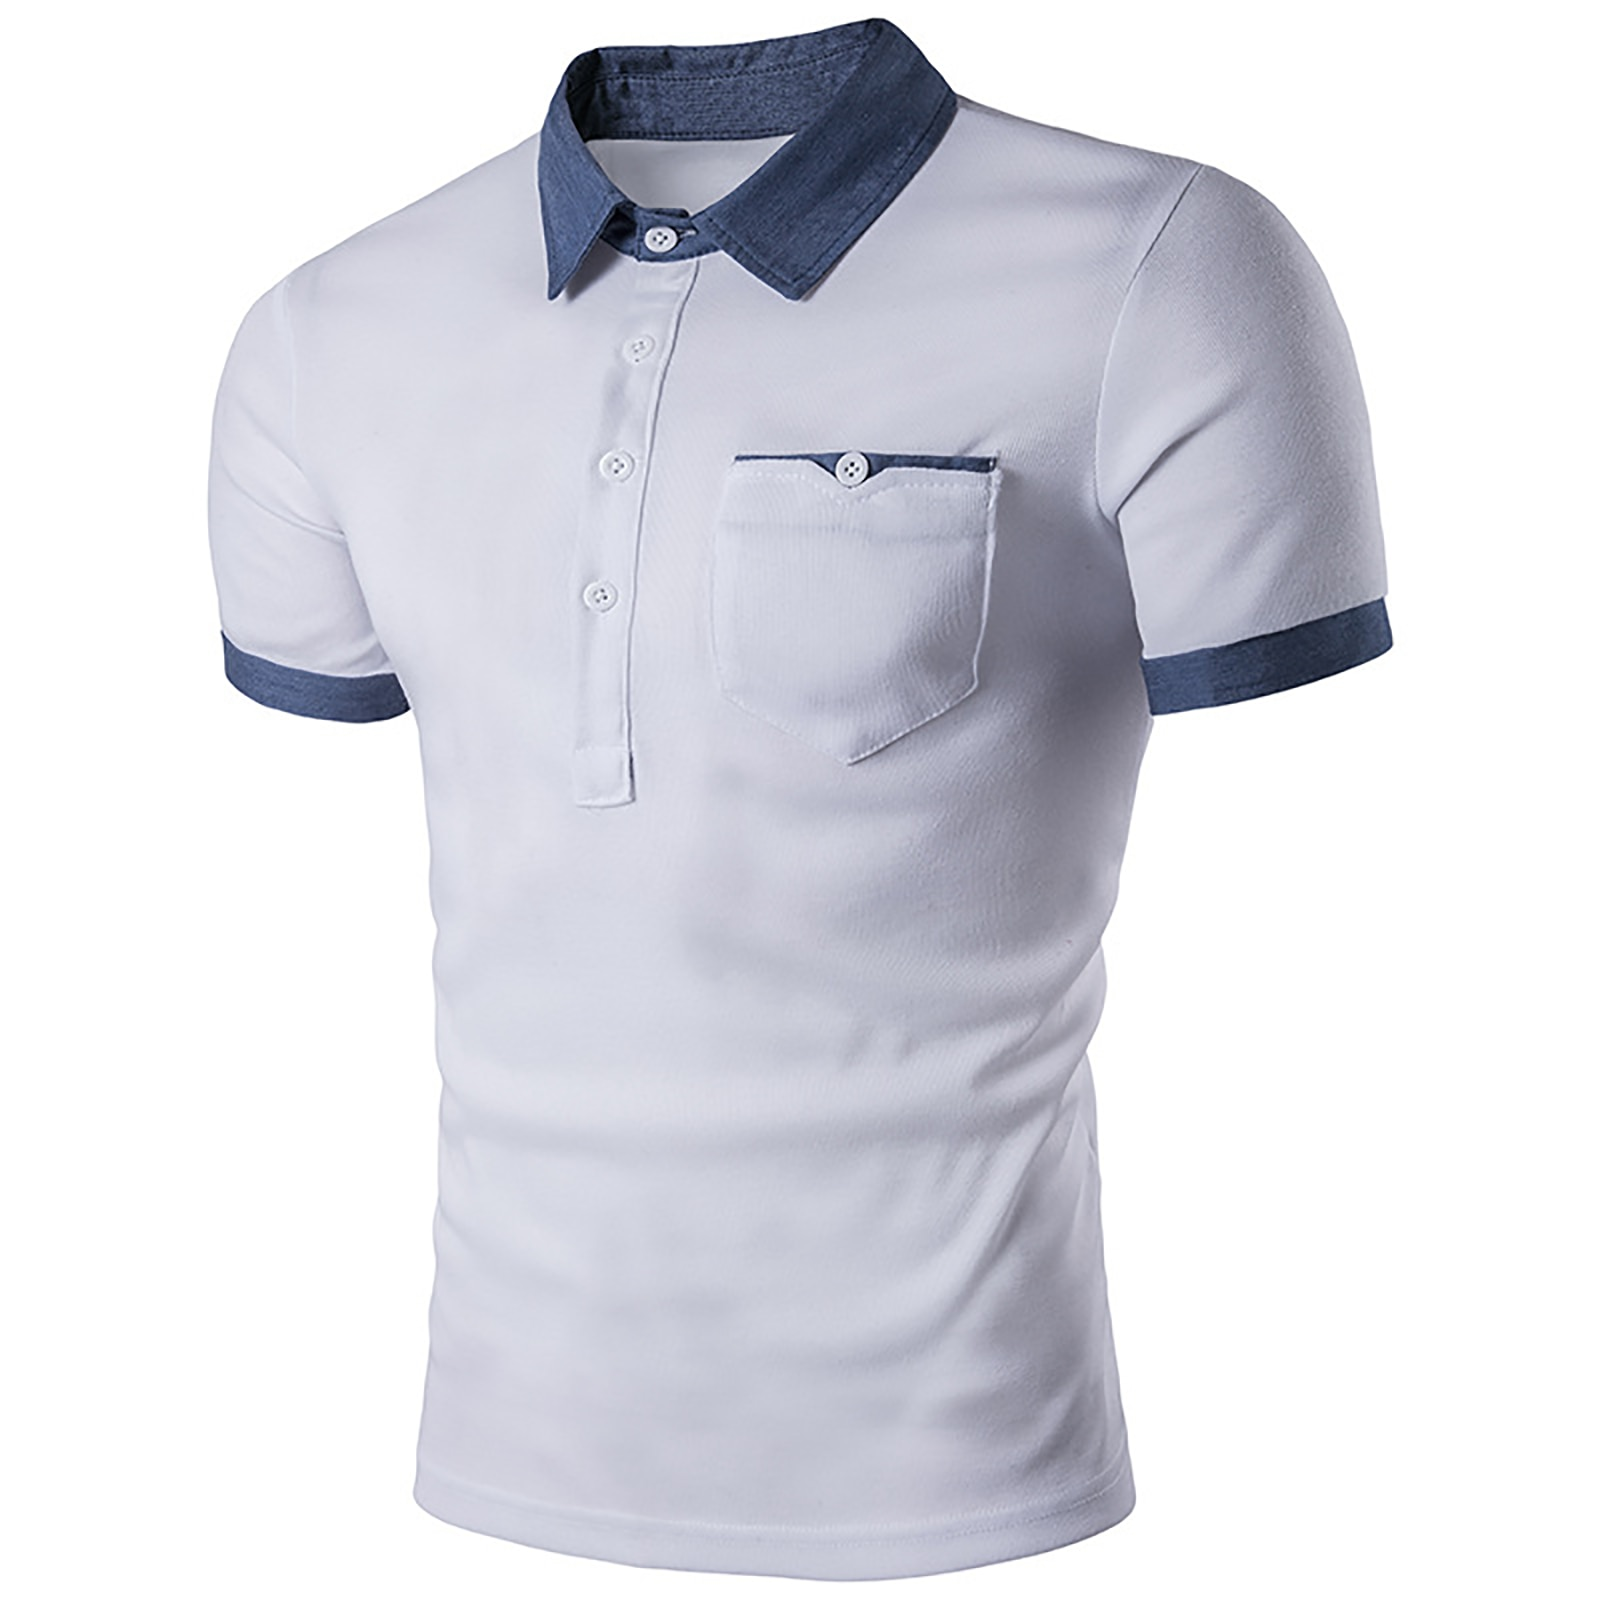 High Quality Cotton Mens Casual Denim Stitching Pocket Male  Polo Shirt Brand Jersey Short Sleeve  Solid Breathable Tops Tee